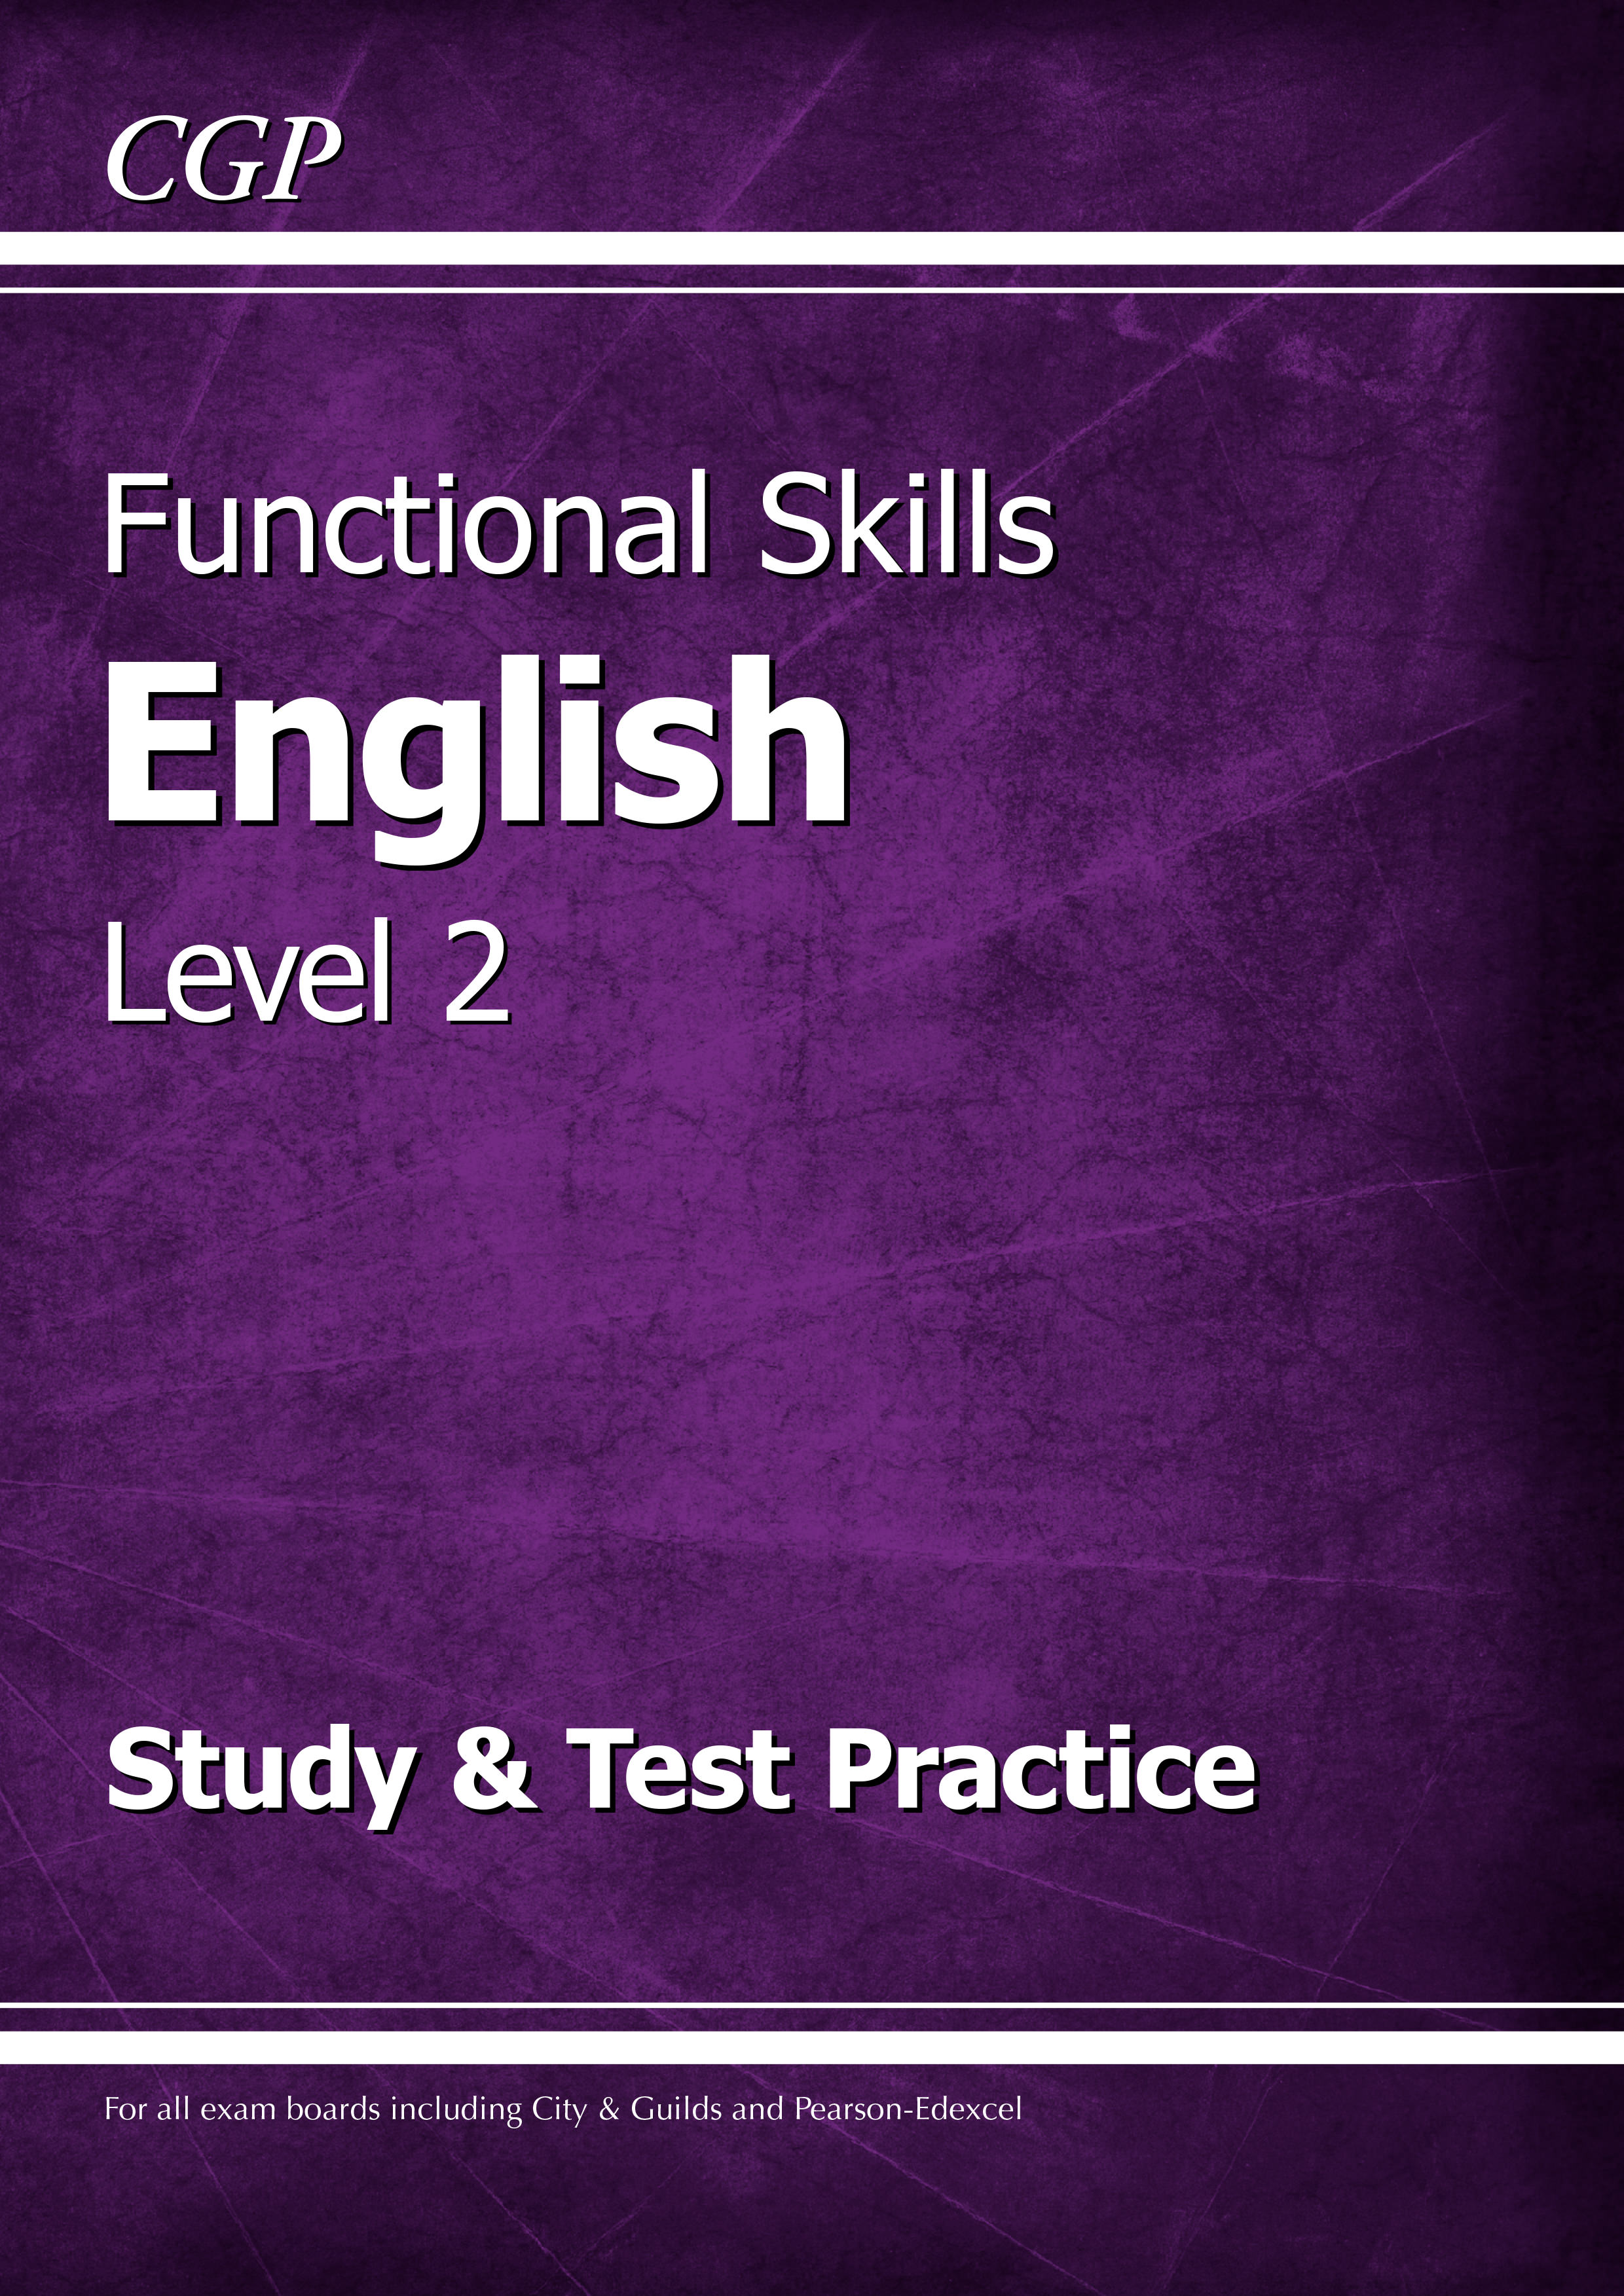 E2SRA2DK - Functional Skills English Level 2 - Study & Test Practice